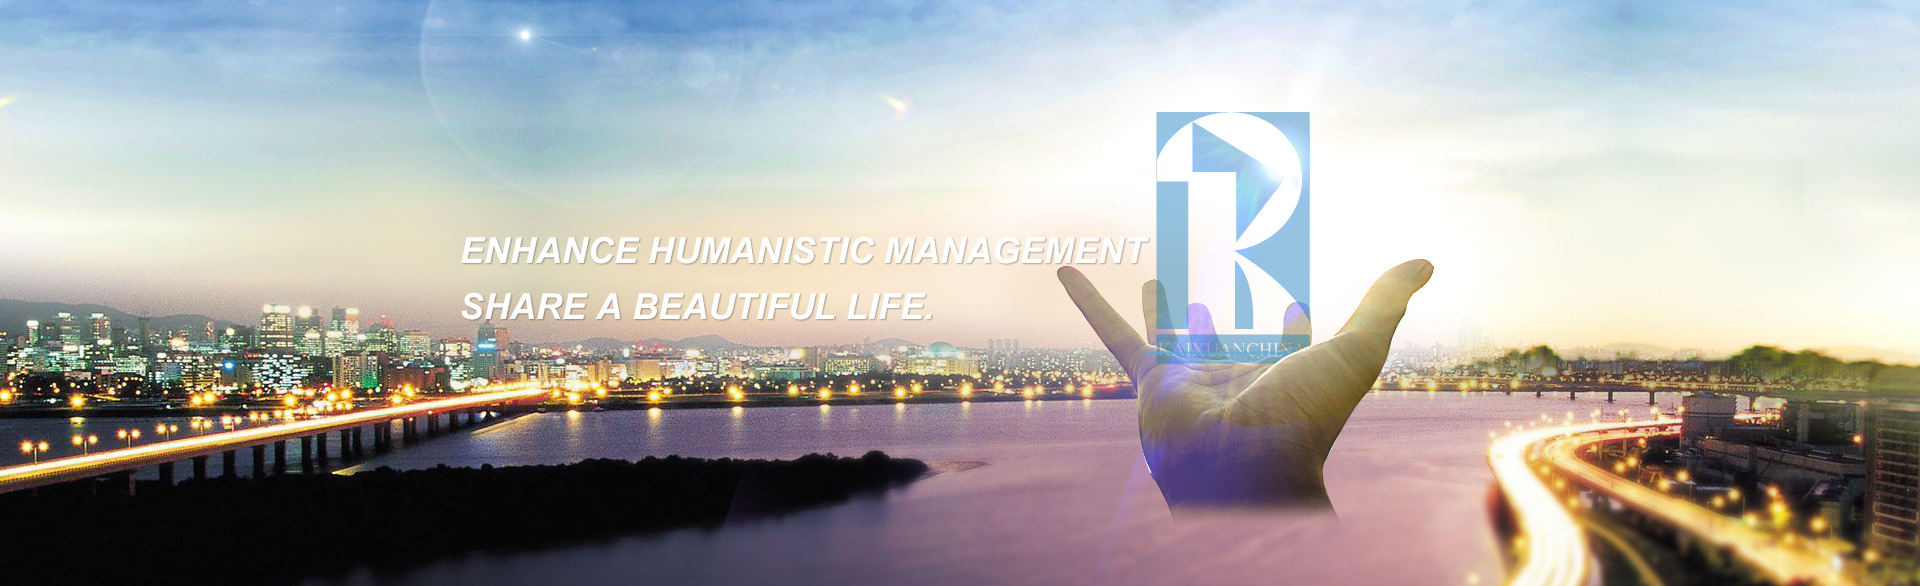 Enhance humanistic management, and share a beautiful life.